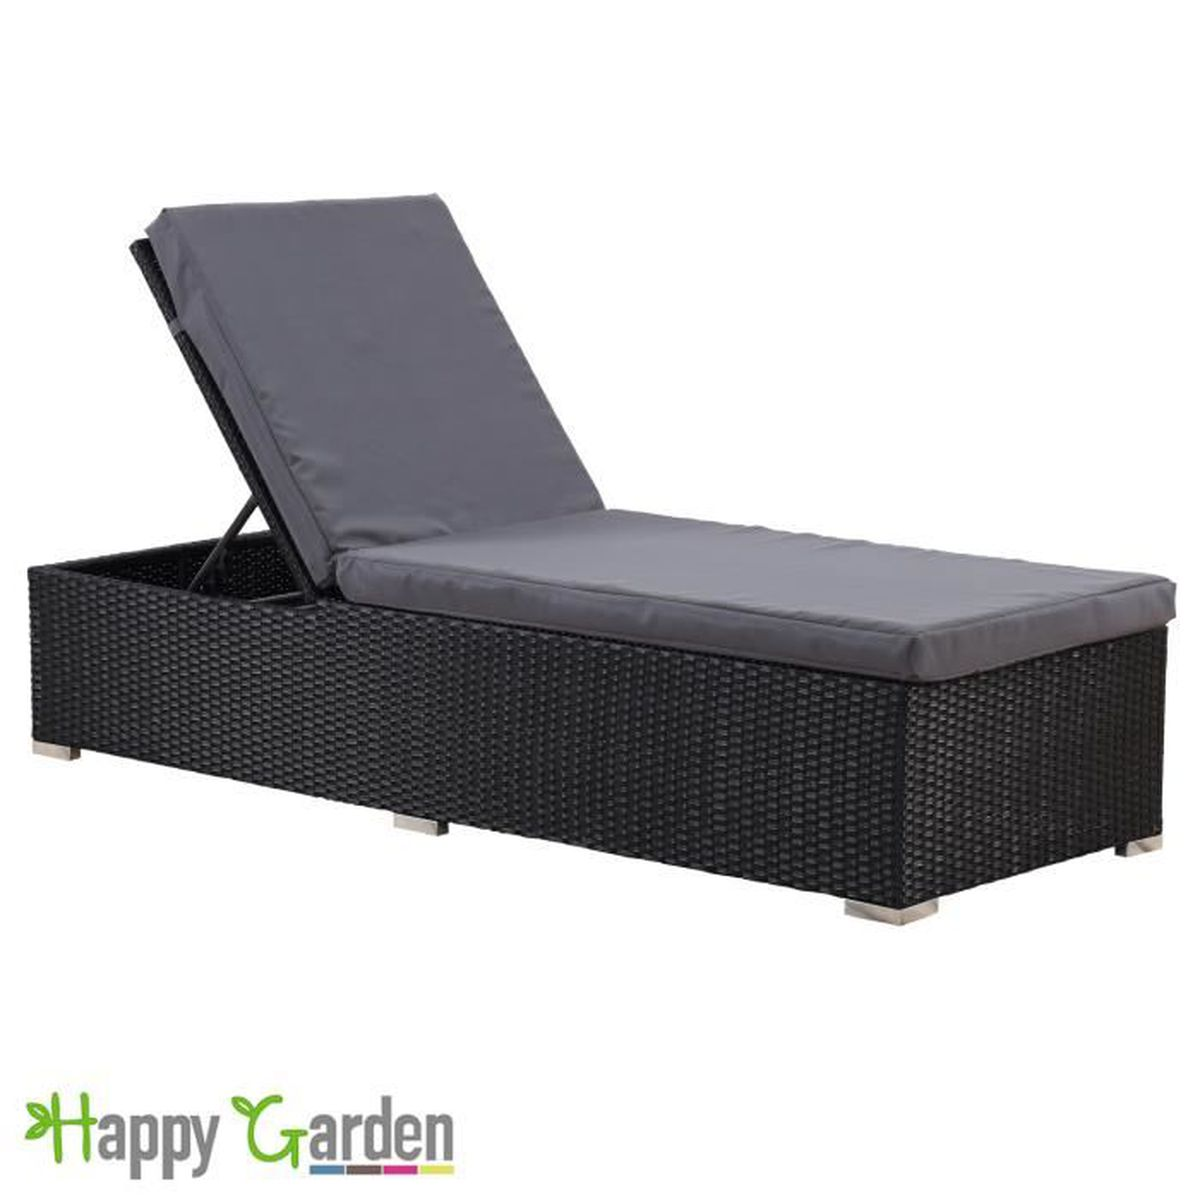 bain de soleil en r sine tress e noir coussin gris 2 noir achat vente chaise longue bain de. Black Bedroom Furniture Sets. Home Design Ideas